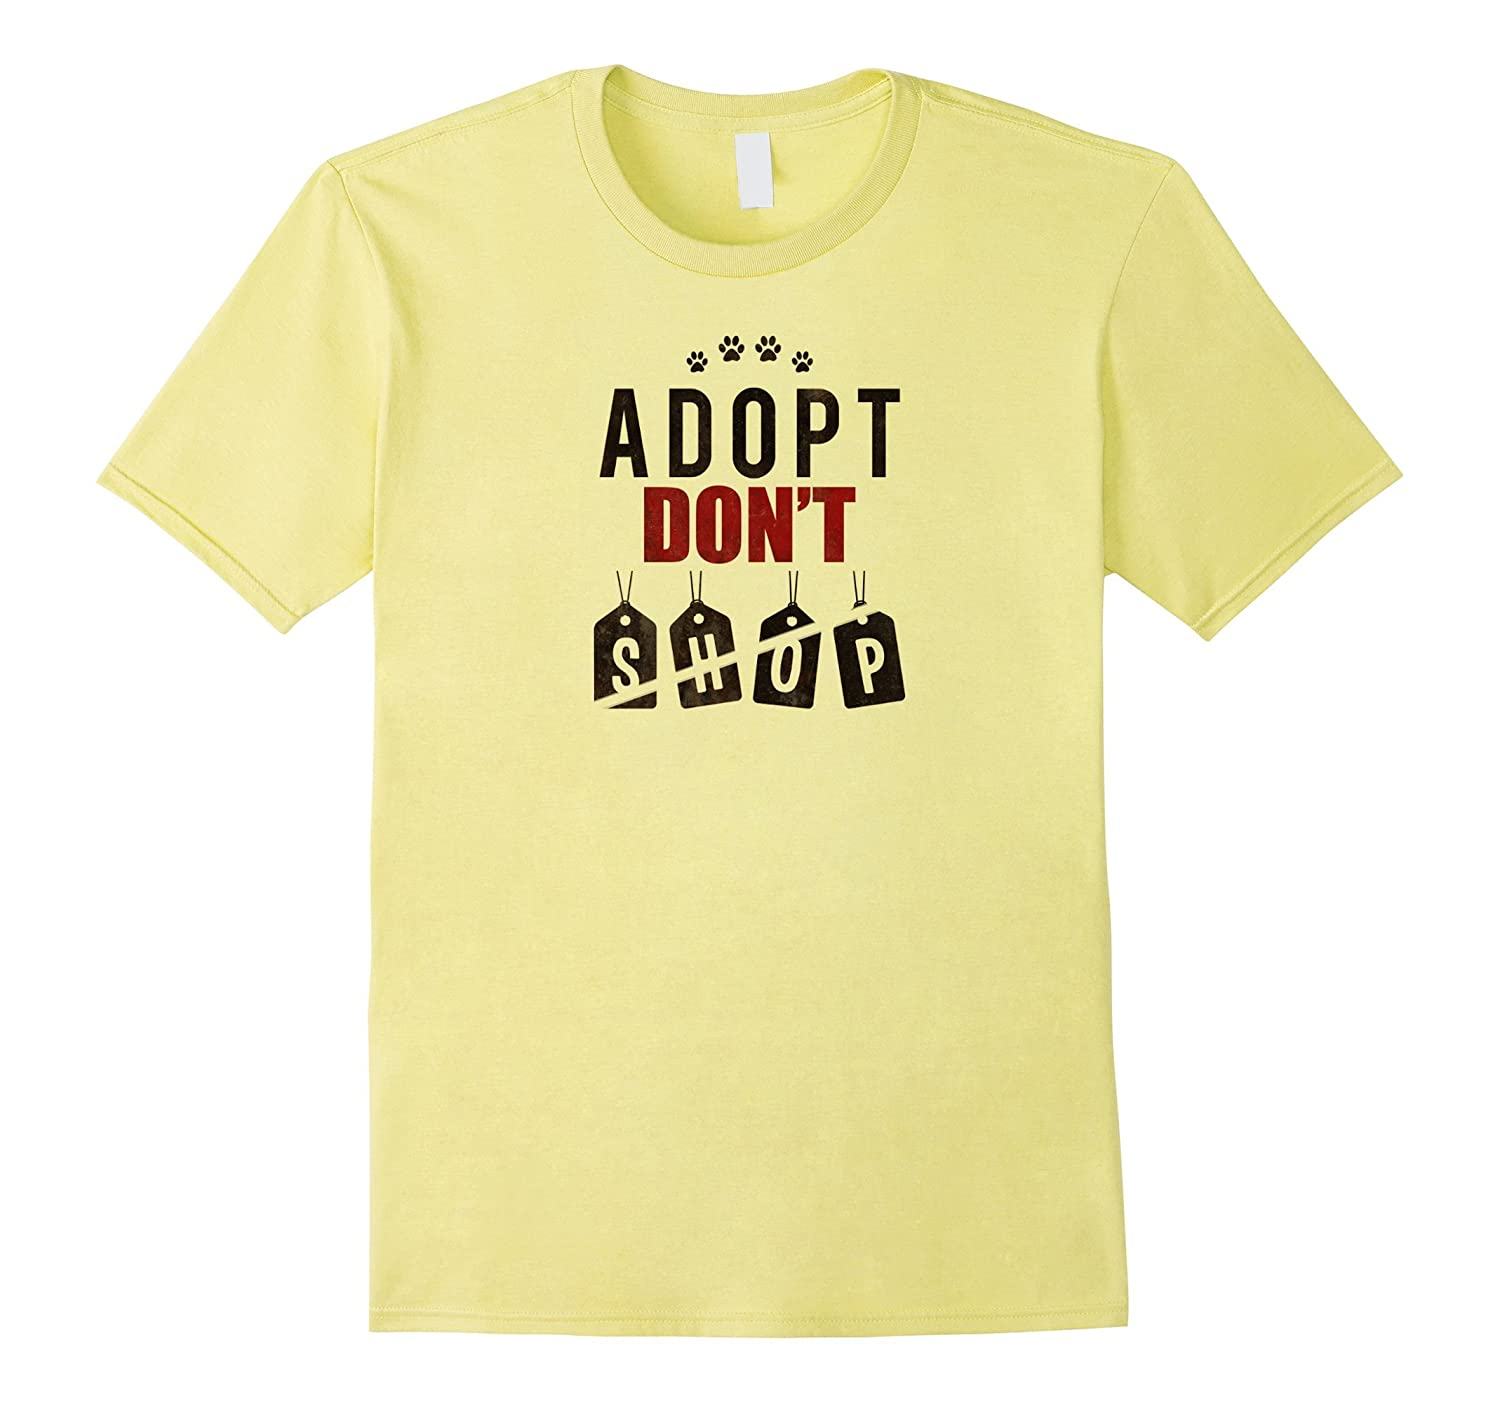 Adopt Don't Shop t-shirt, dog advocate, dog shelter, rescue